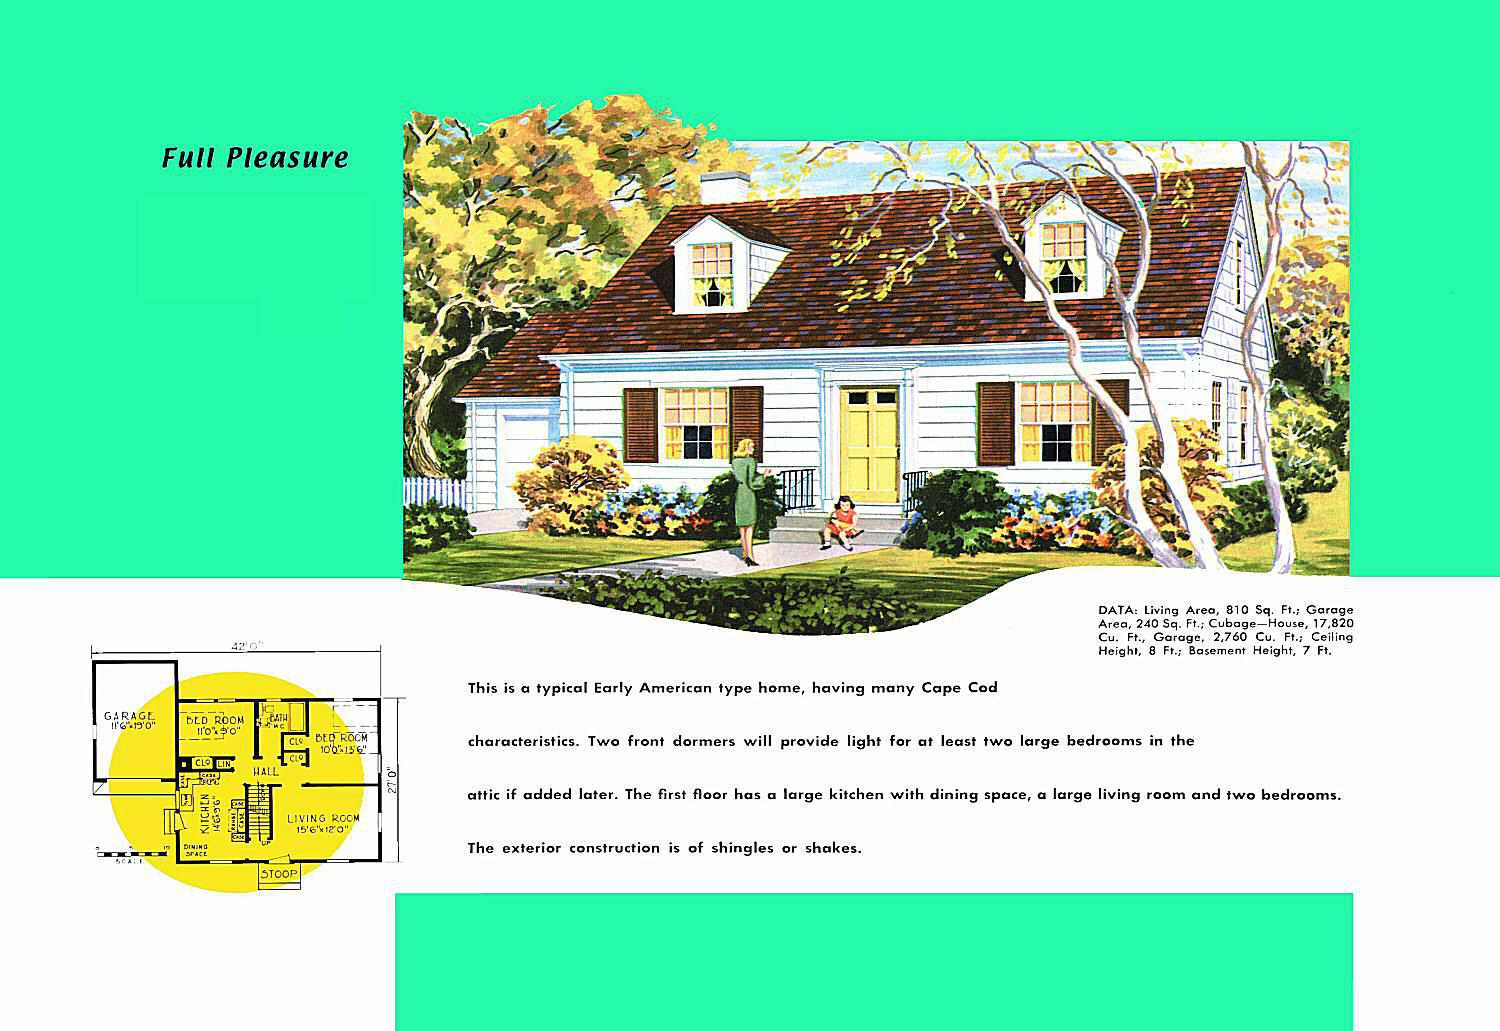 Cape Cod House Plans - 1950s America Style Ideas For Open Kitchens Living Rooms And Dining In A Cape Cod Style Home on